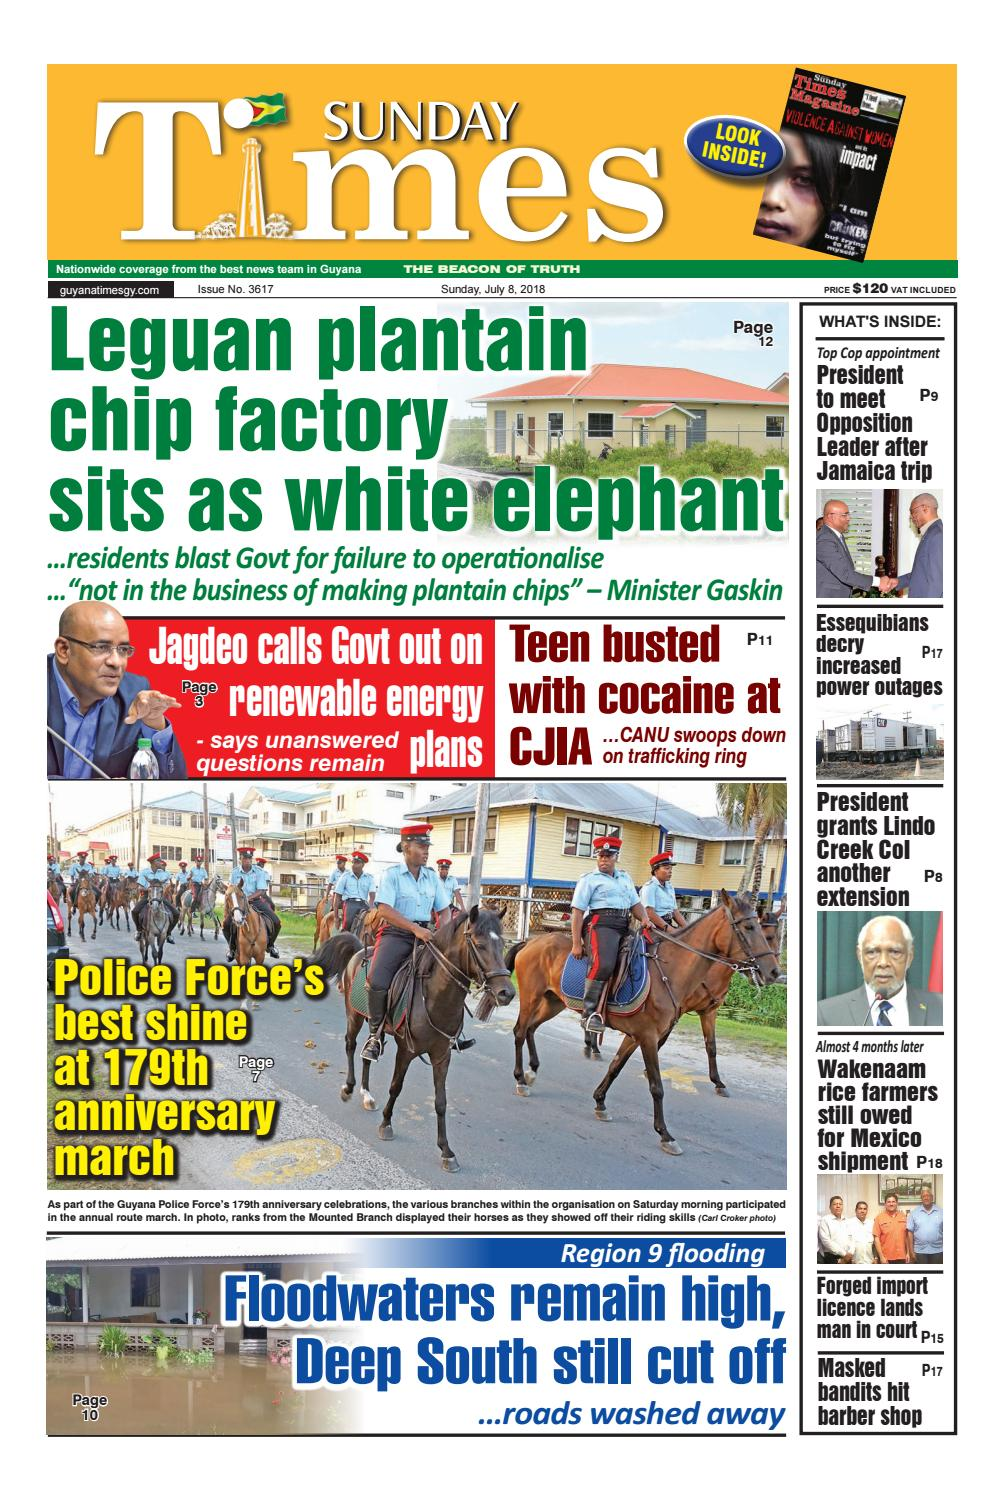 Guyana Times, Sunday, July 8, 2018 by Gytimes - issuu